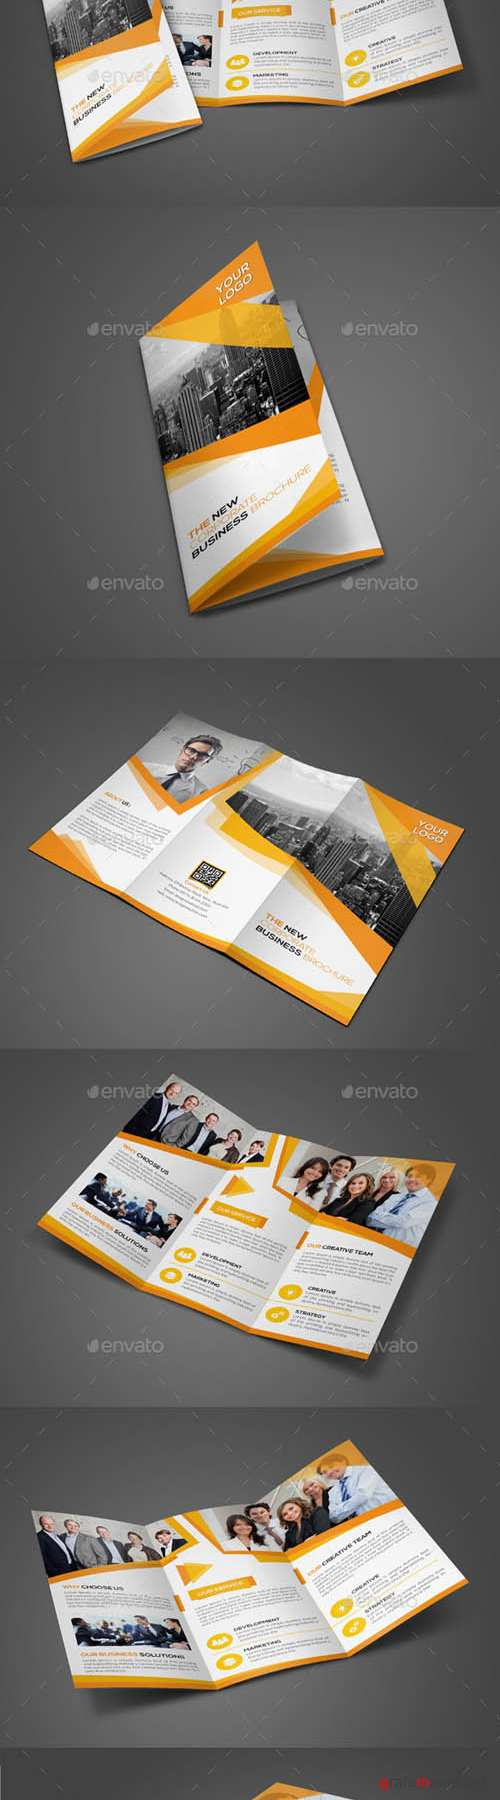 Corporate Trifold Brochure 11439119